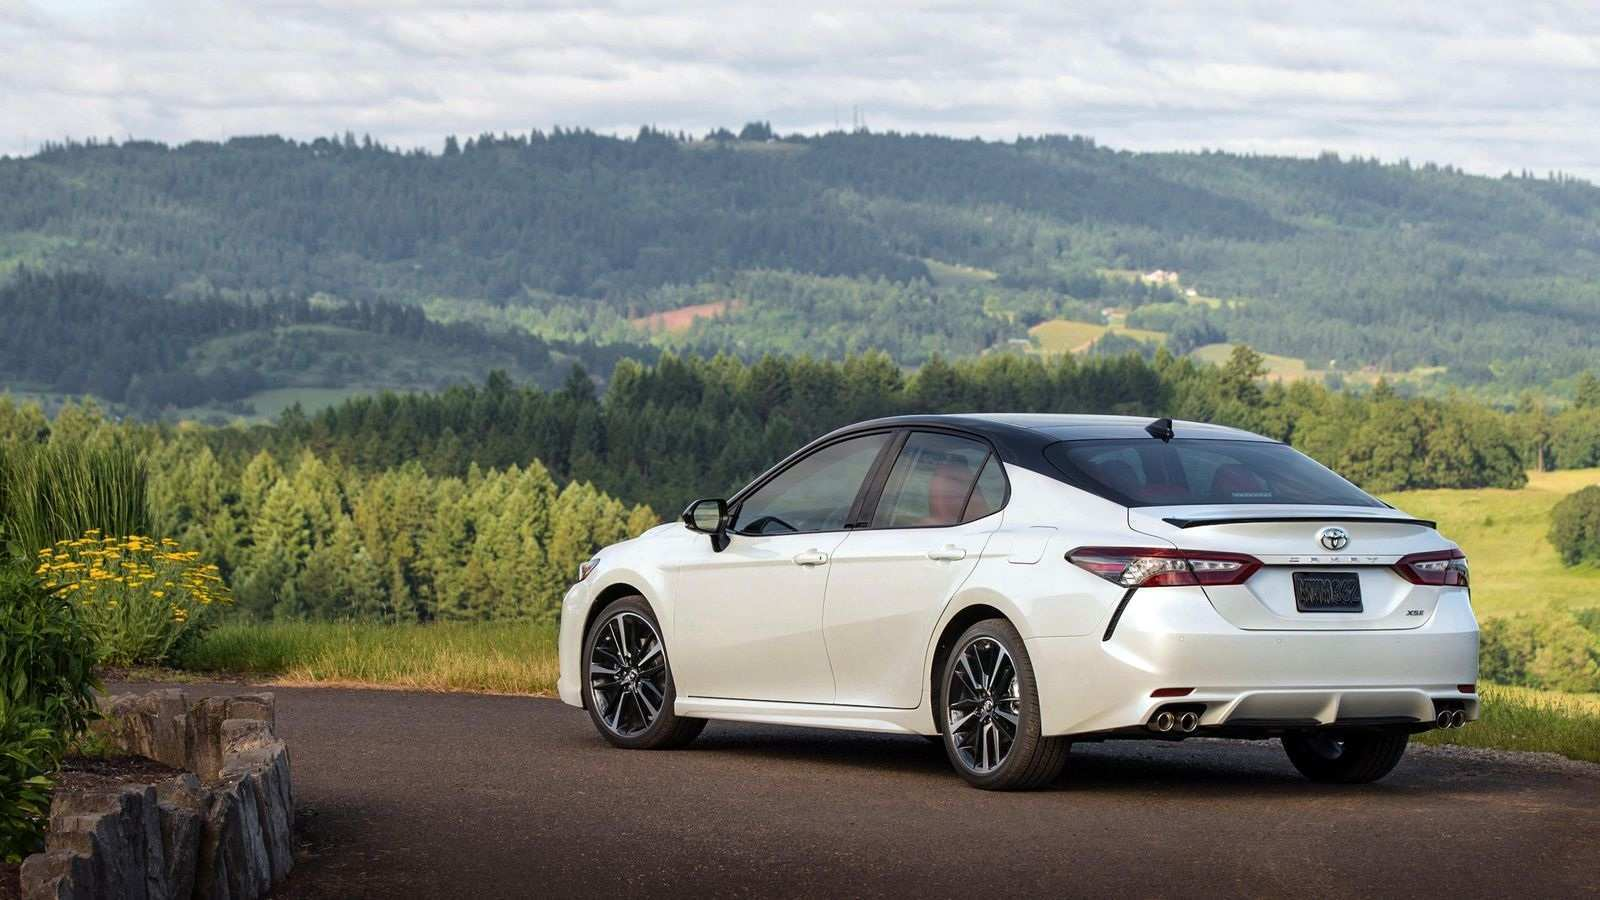 54 All New 2020 Toyota Camry Se Hybrid Speed Test